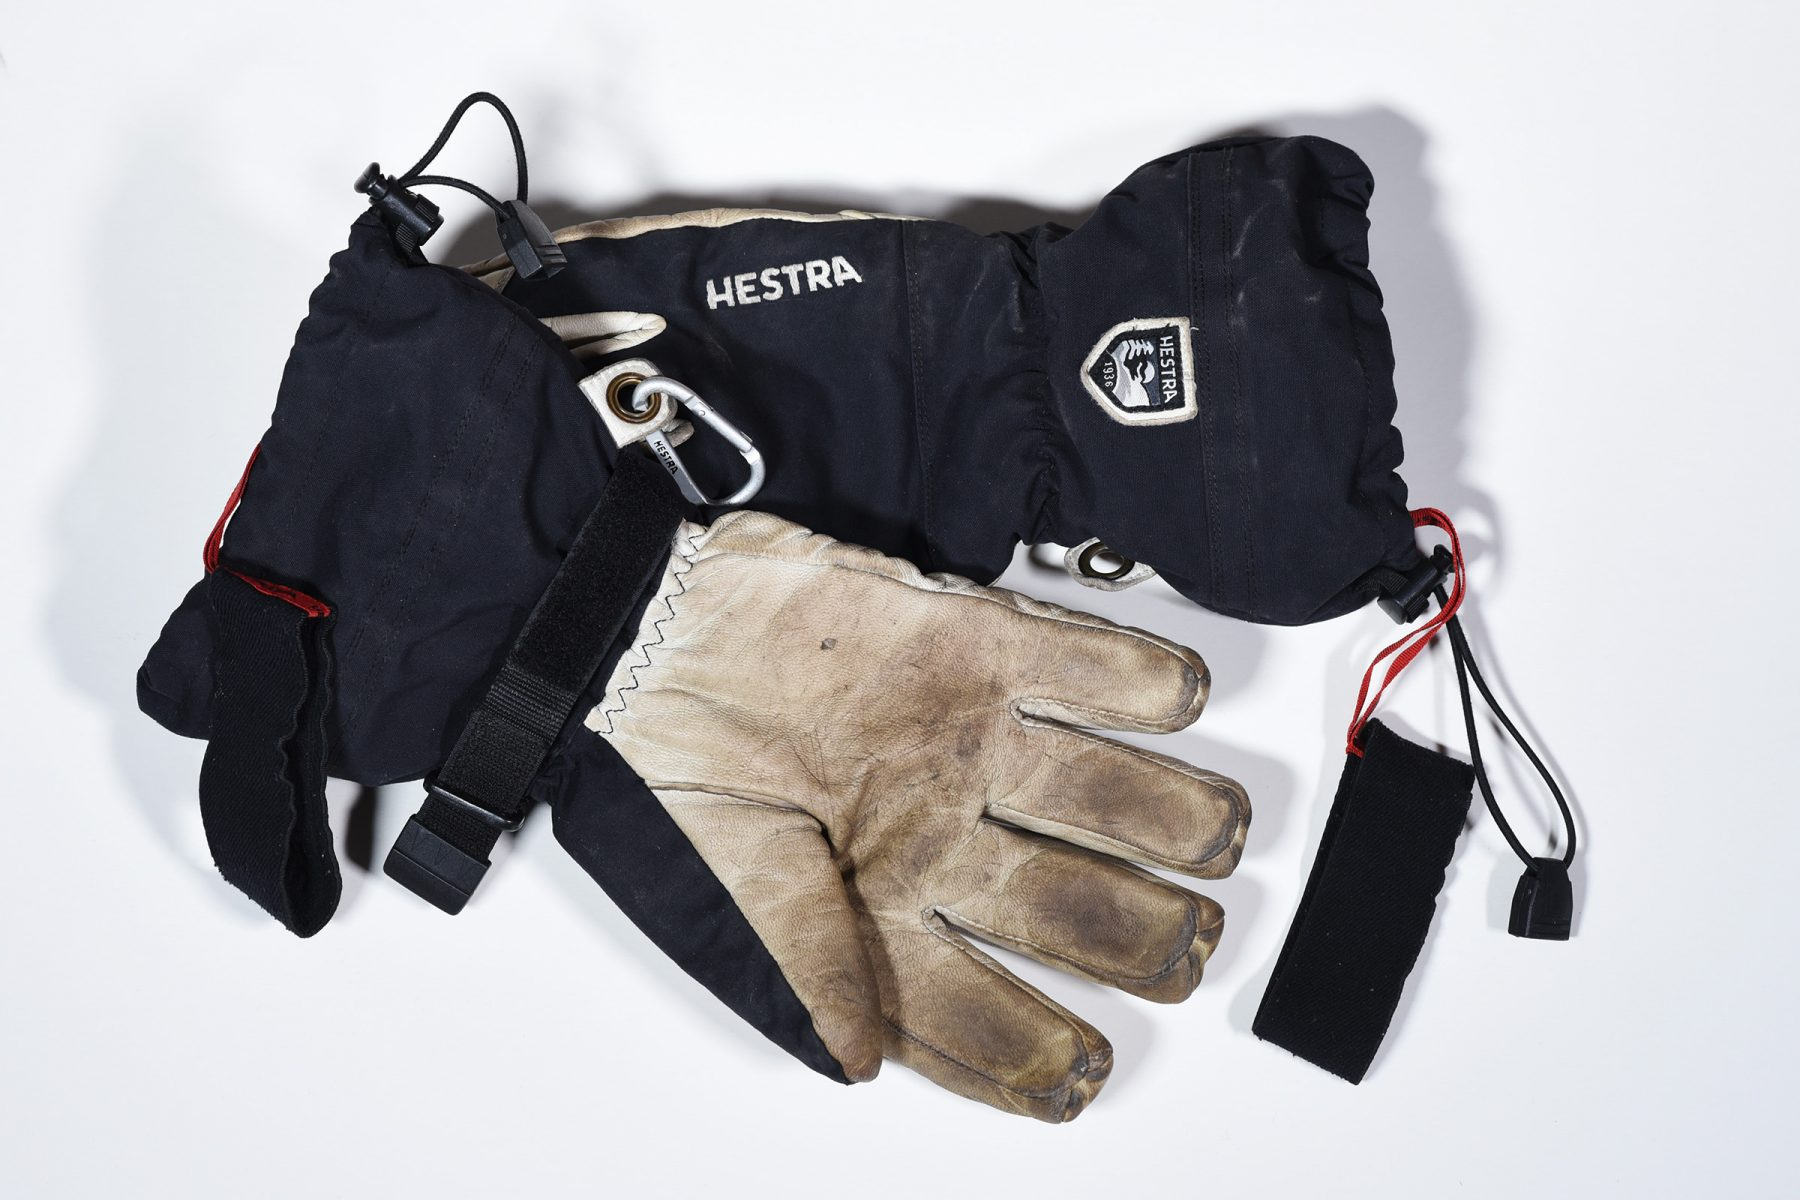 Hestra Heli ski gloves after two winter seasons of use